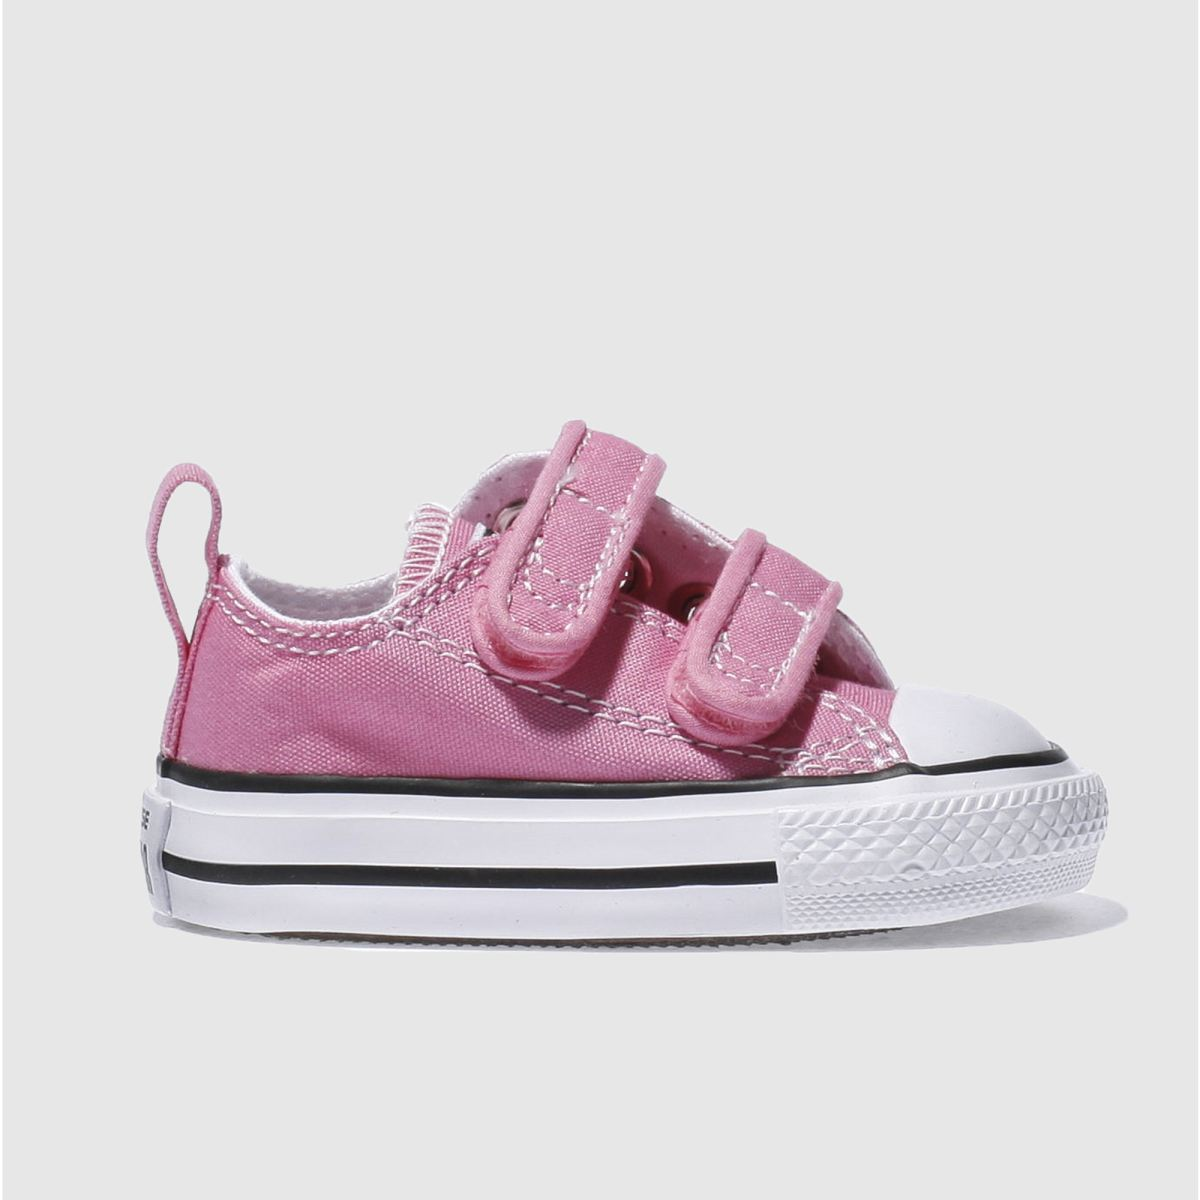 converse pink all star ox 2v Girls Toddler Trainers